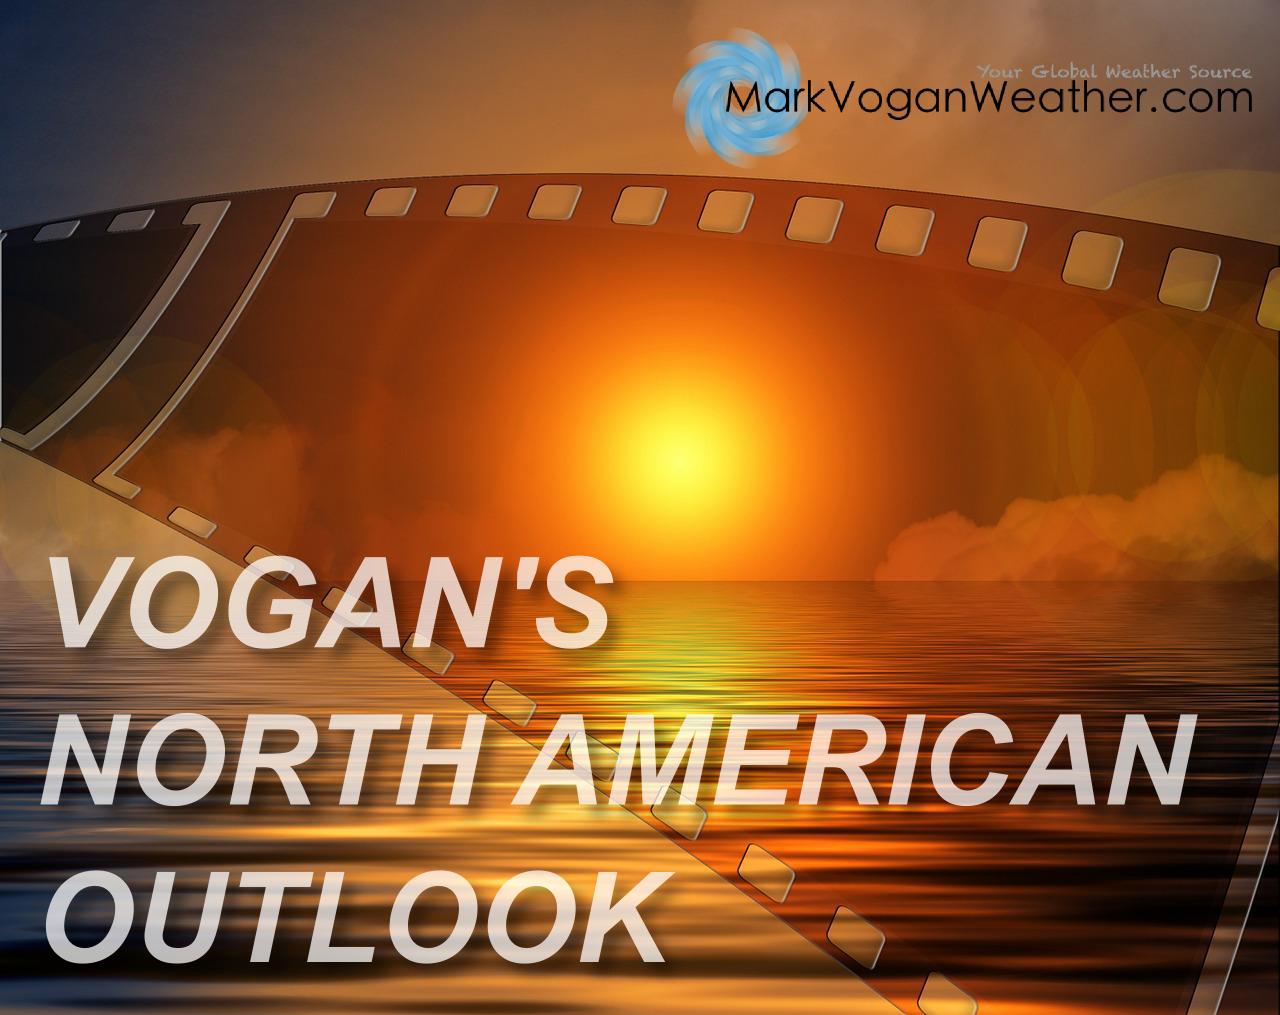 MON 24 FEB: VOGAN'S NORTH AMERICAN OUTLOOK